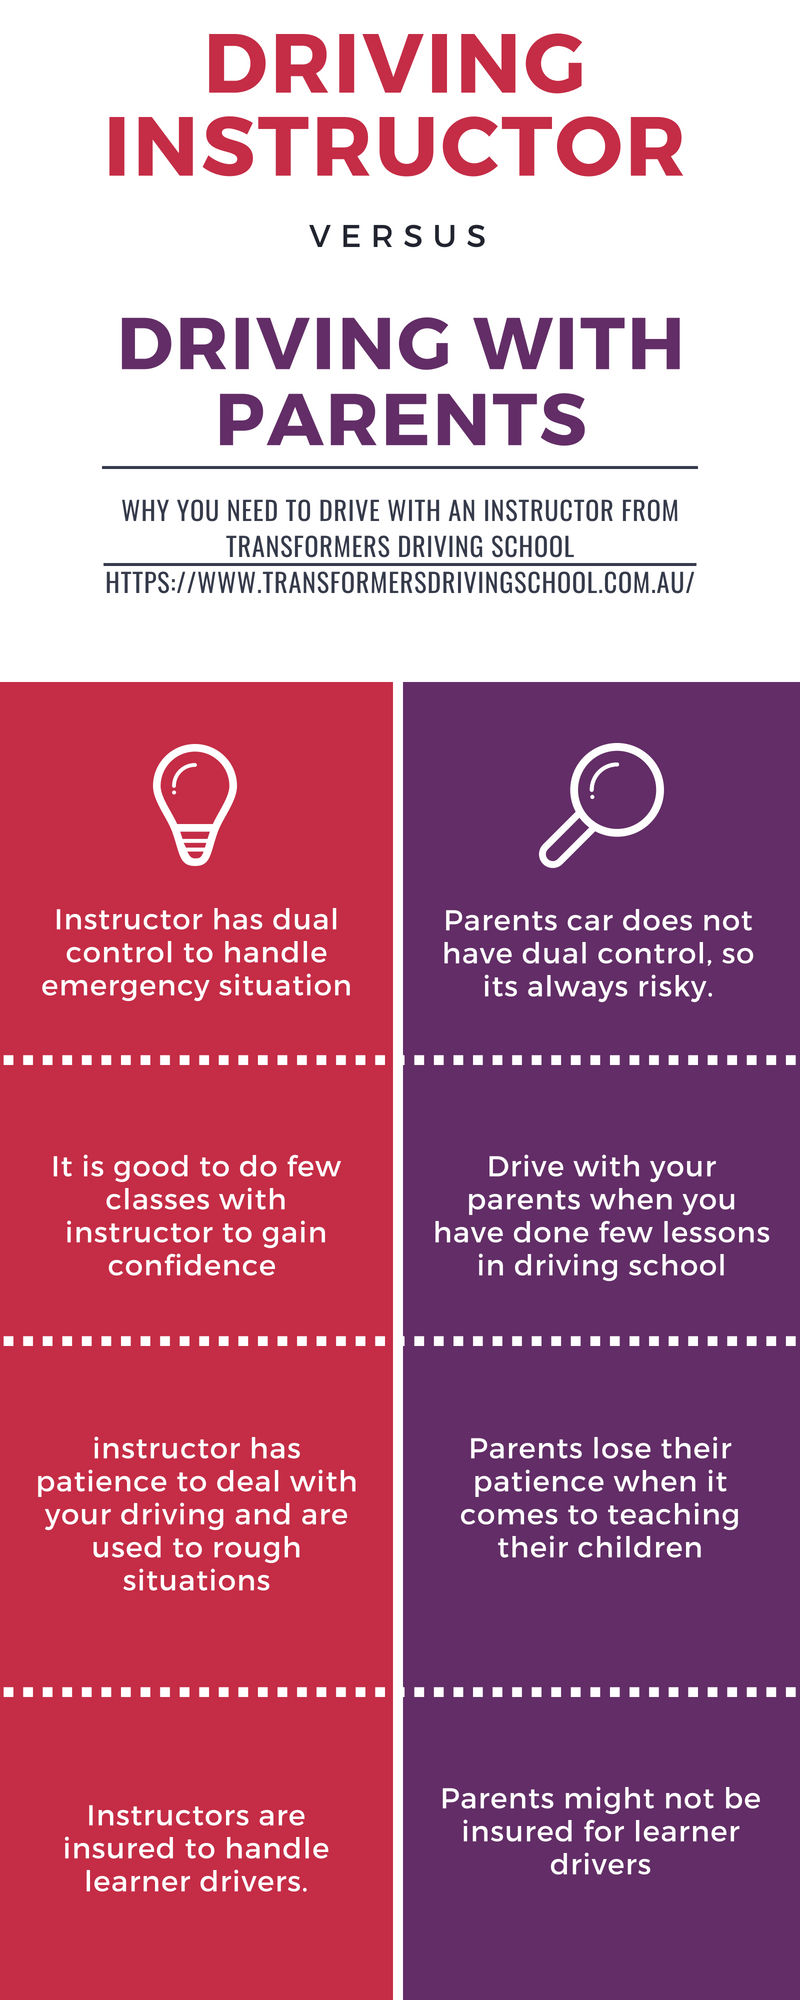 instructor-vs-parent